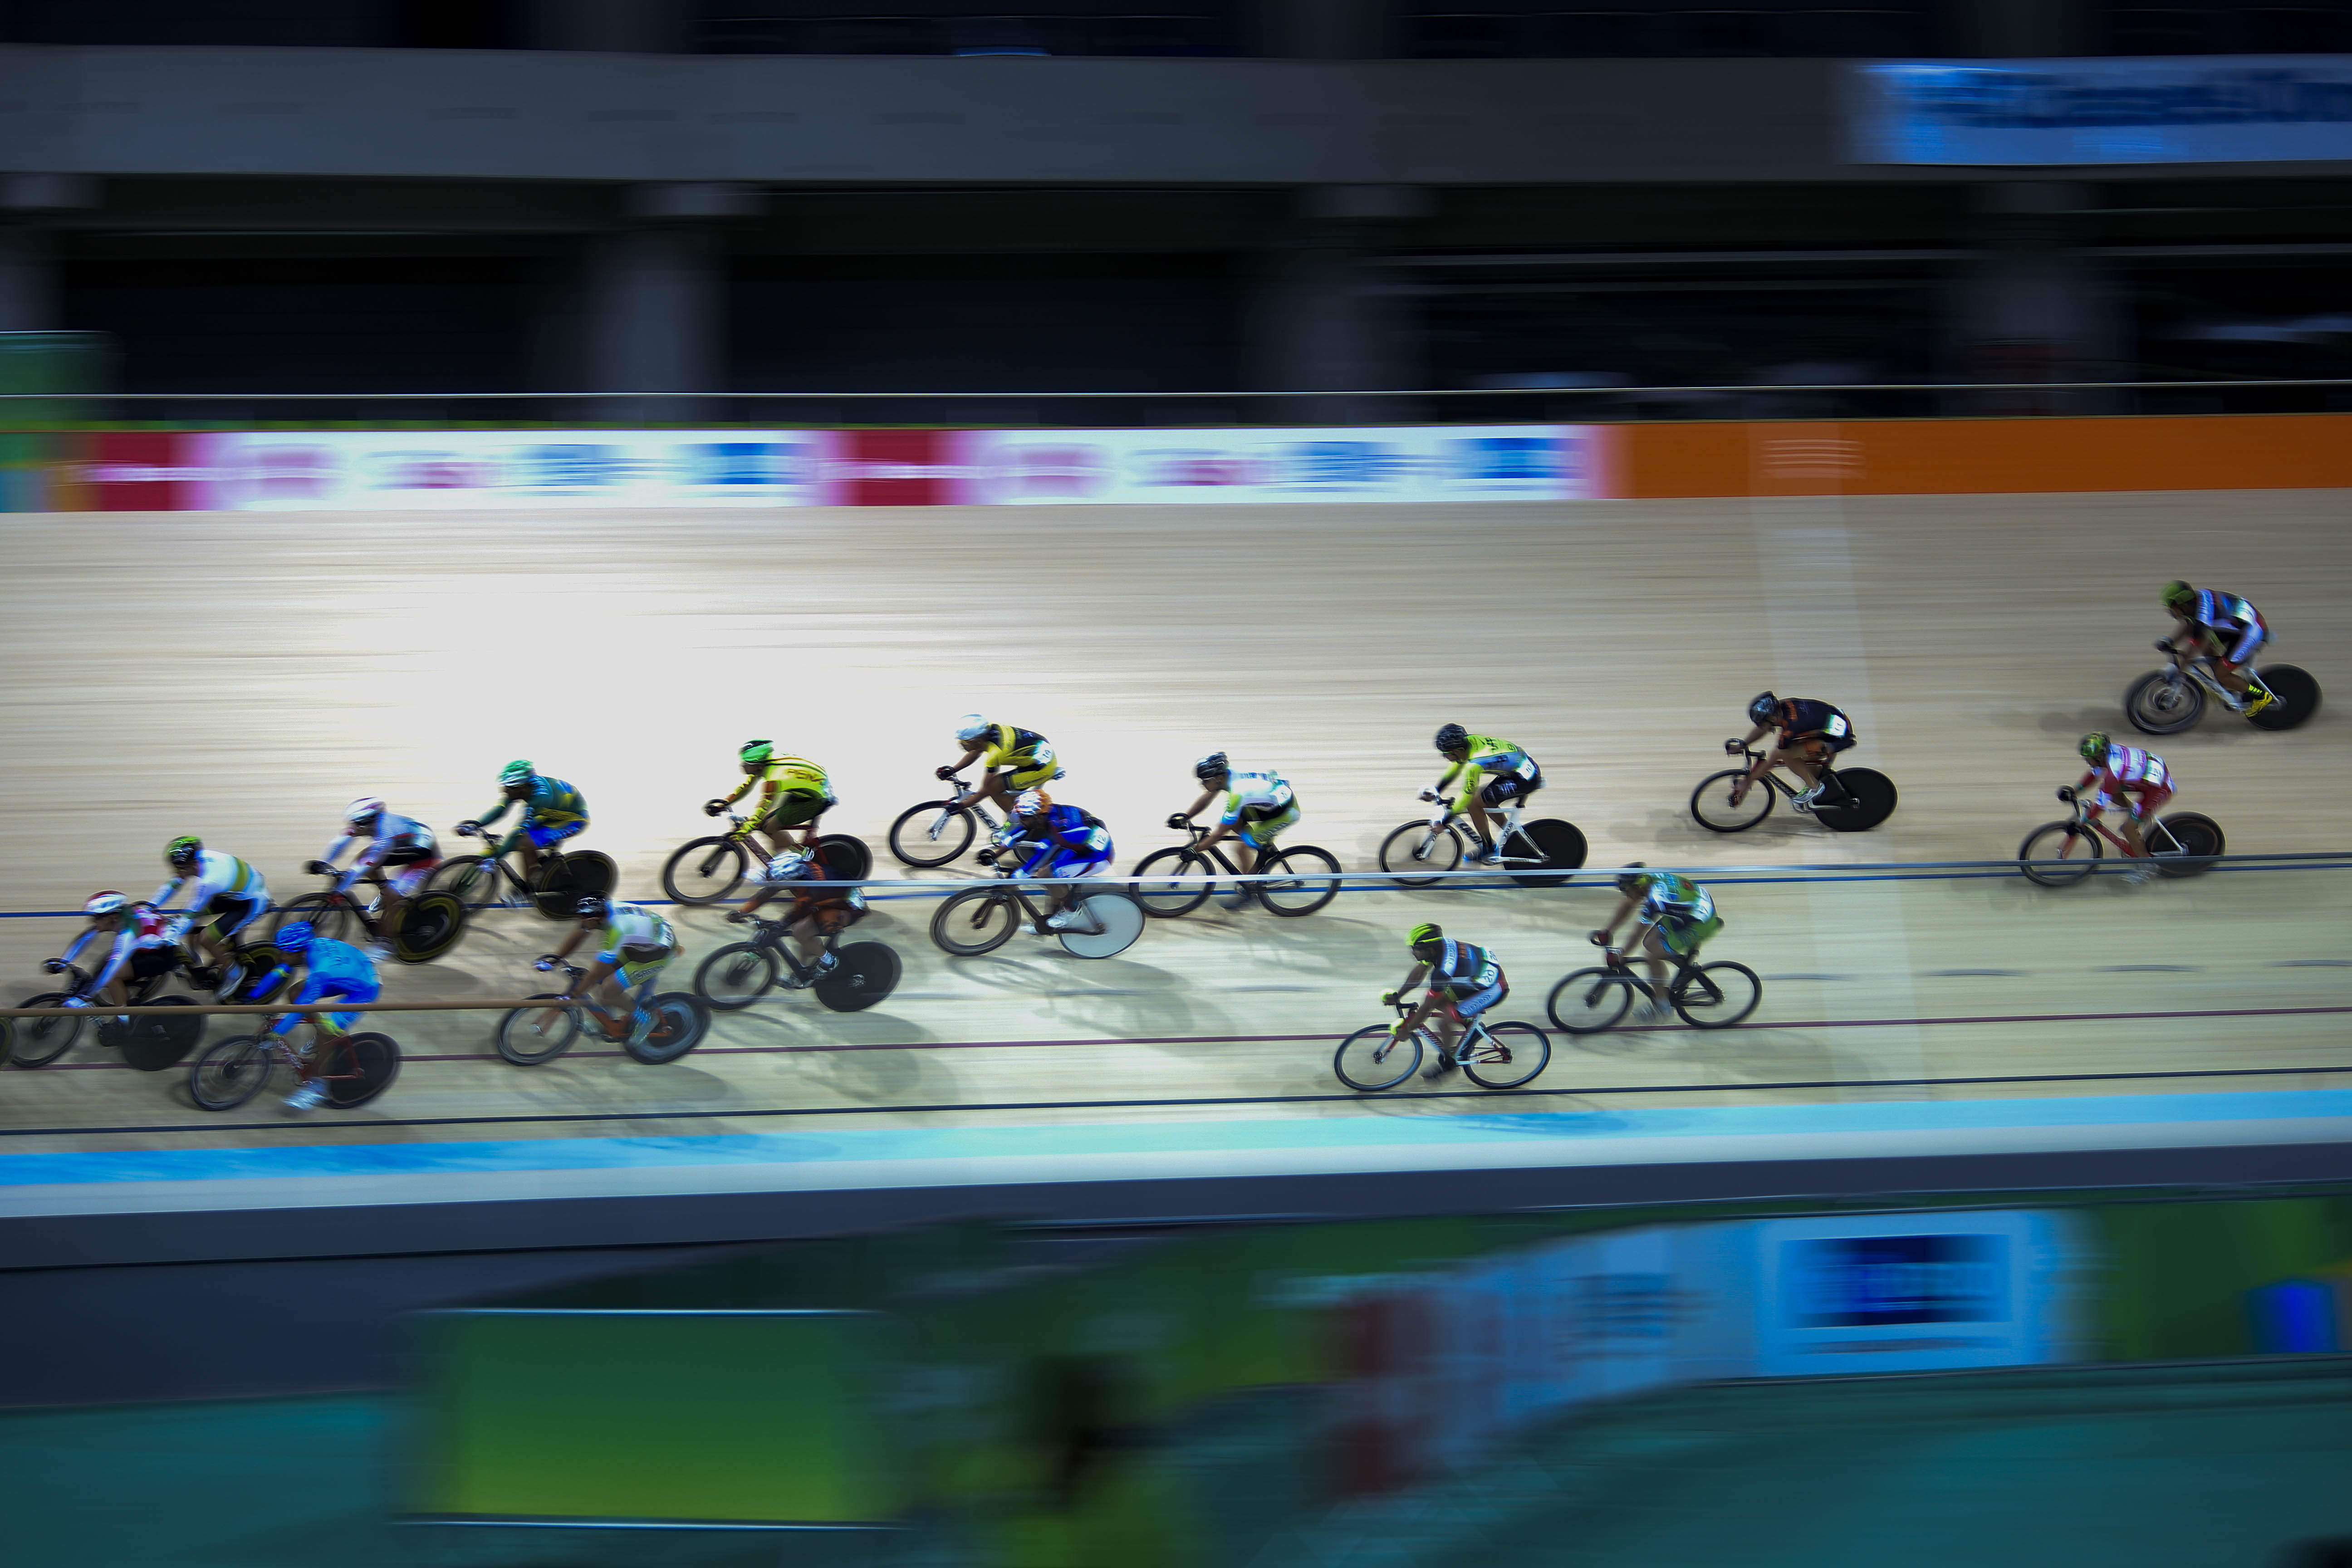 FileOlympic Velodrome In Barra Olympic Park Tested The Track 250616 10